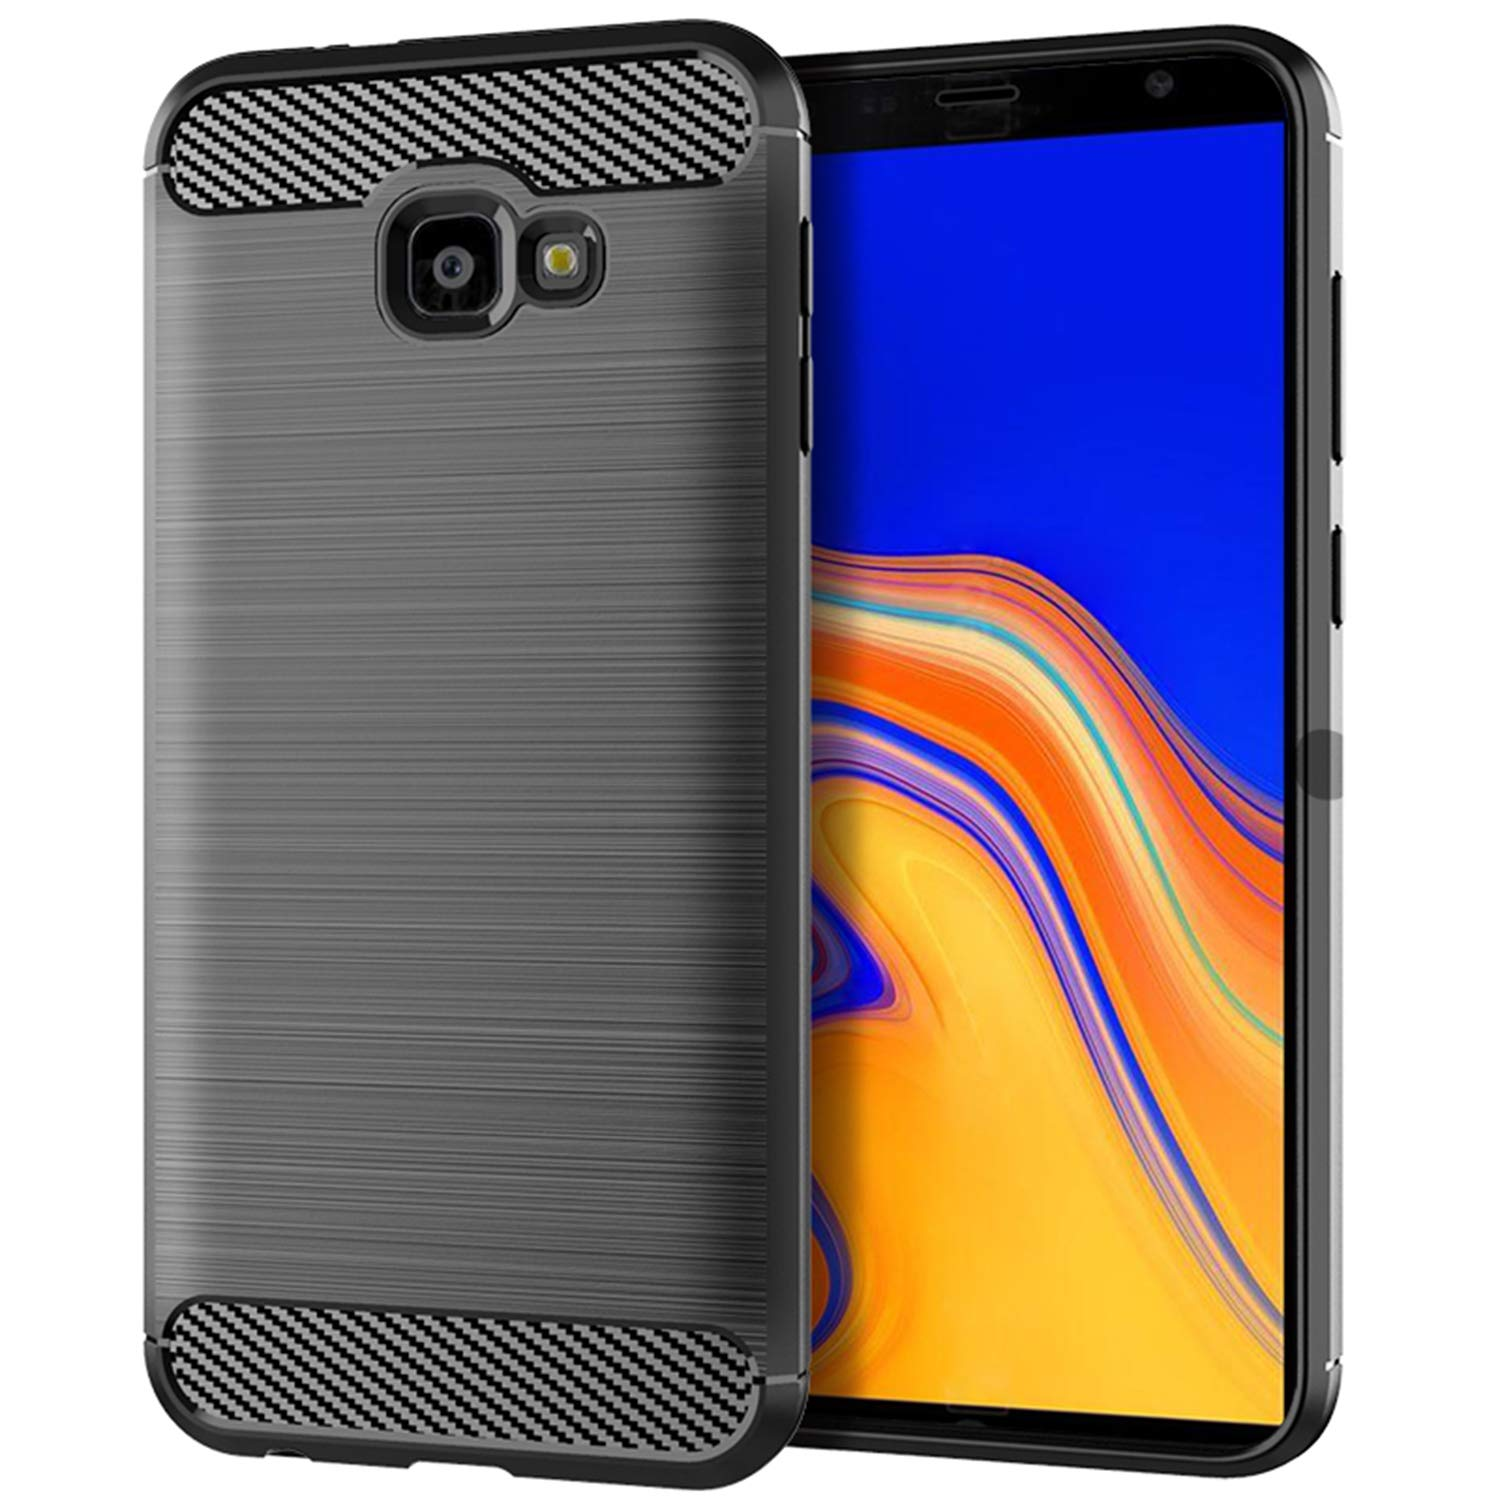 Amazon Samsung Galaxy J4 Plus 2018 Case SCL Samsung Galaxy J4 Plus Phone Case Exquisite Series Carbon Fiber Design Protective Cover with Anti Scratch